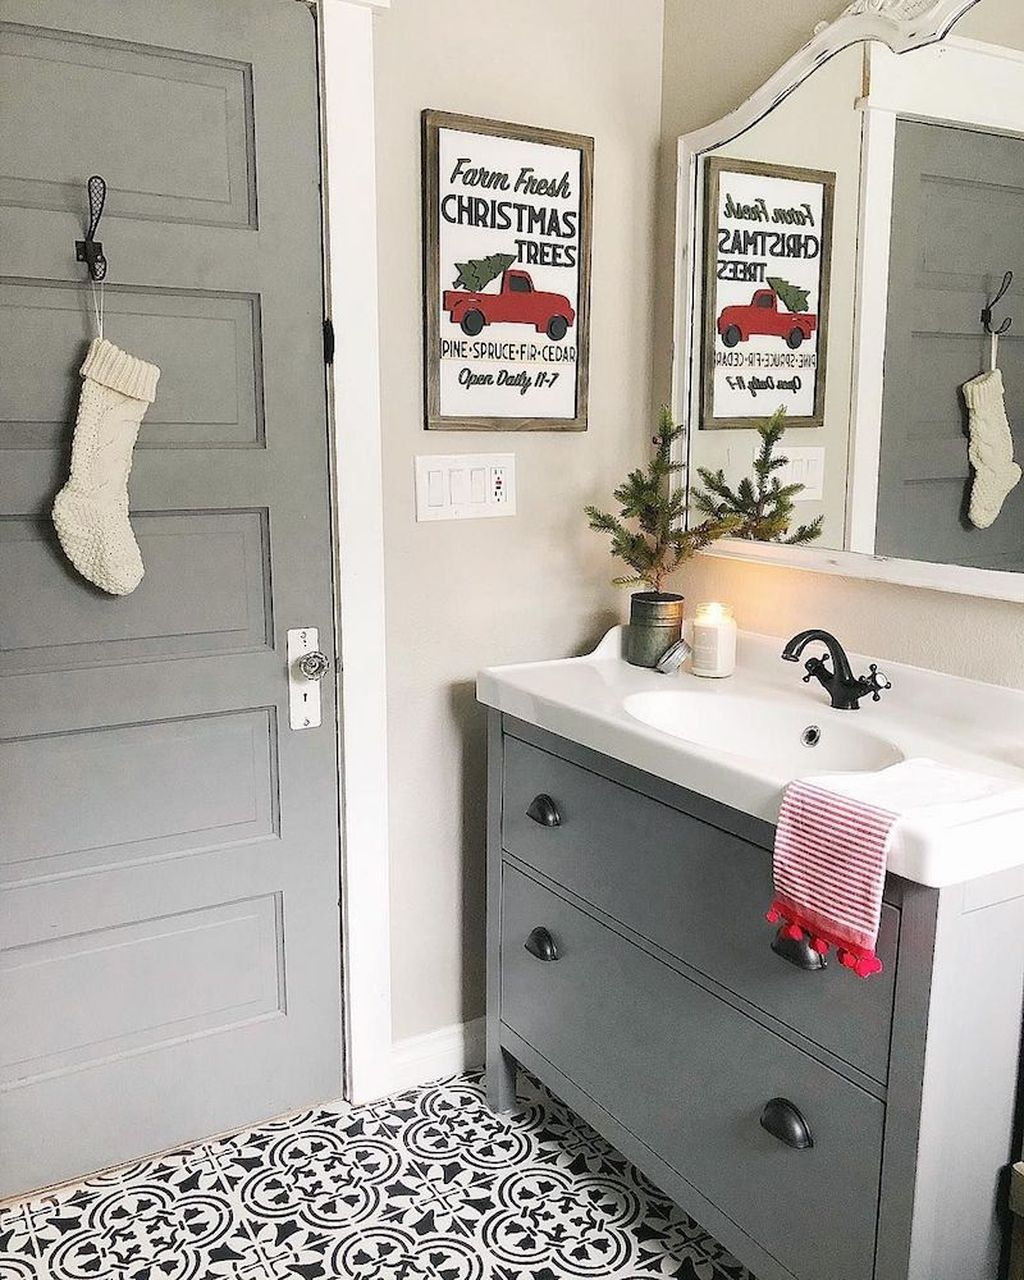 Fabulous Christmas Theme Bathroom Decor Ideas Trend 2019 07